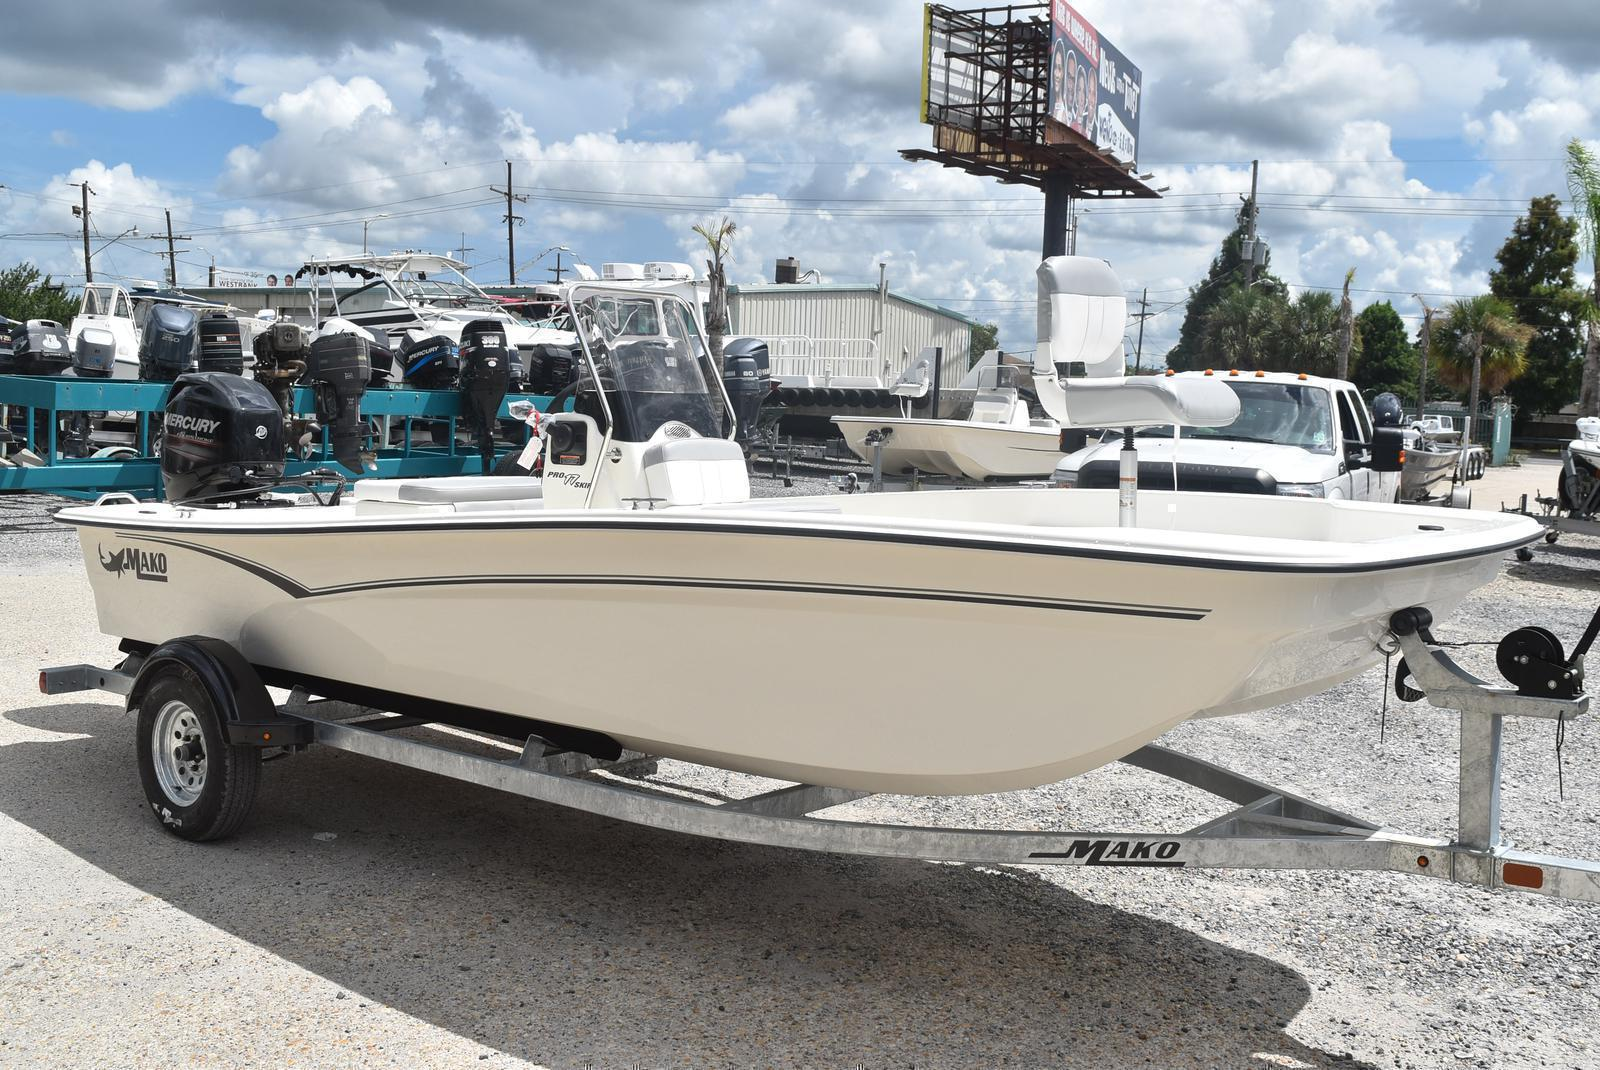 2020 Mako boat for sale, model of the boat is Pro Skiff 17, 75 ELPT & Image # 690 of 702